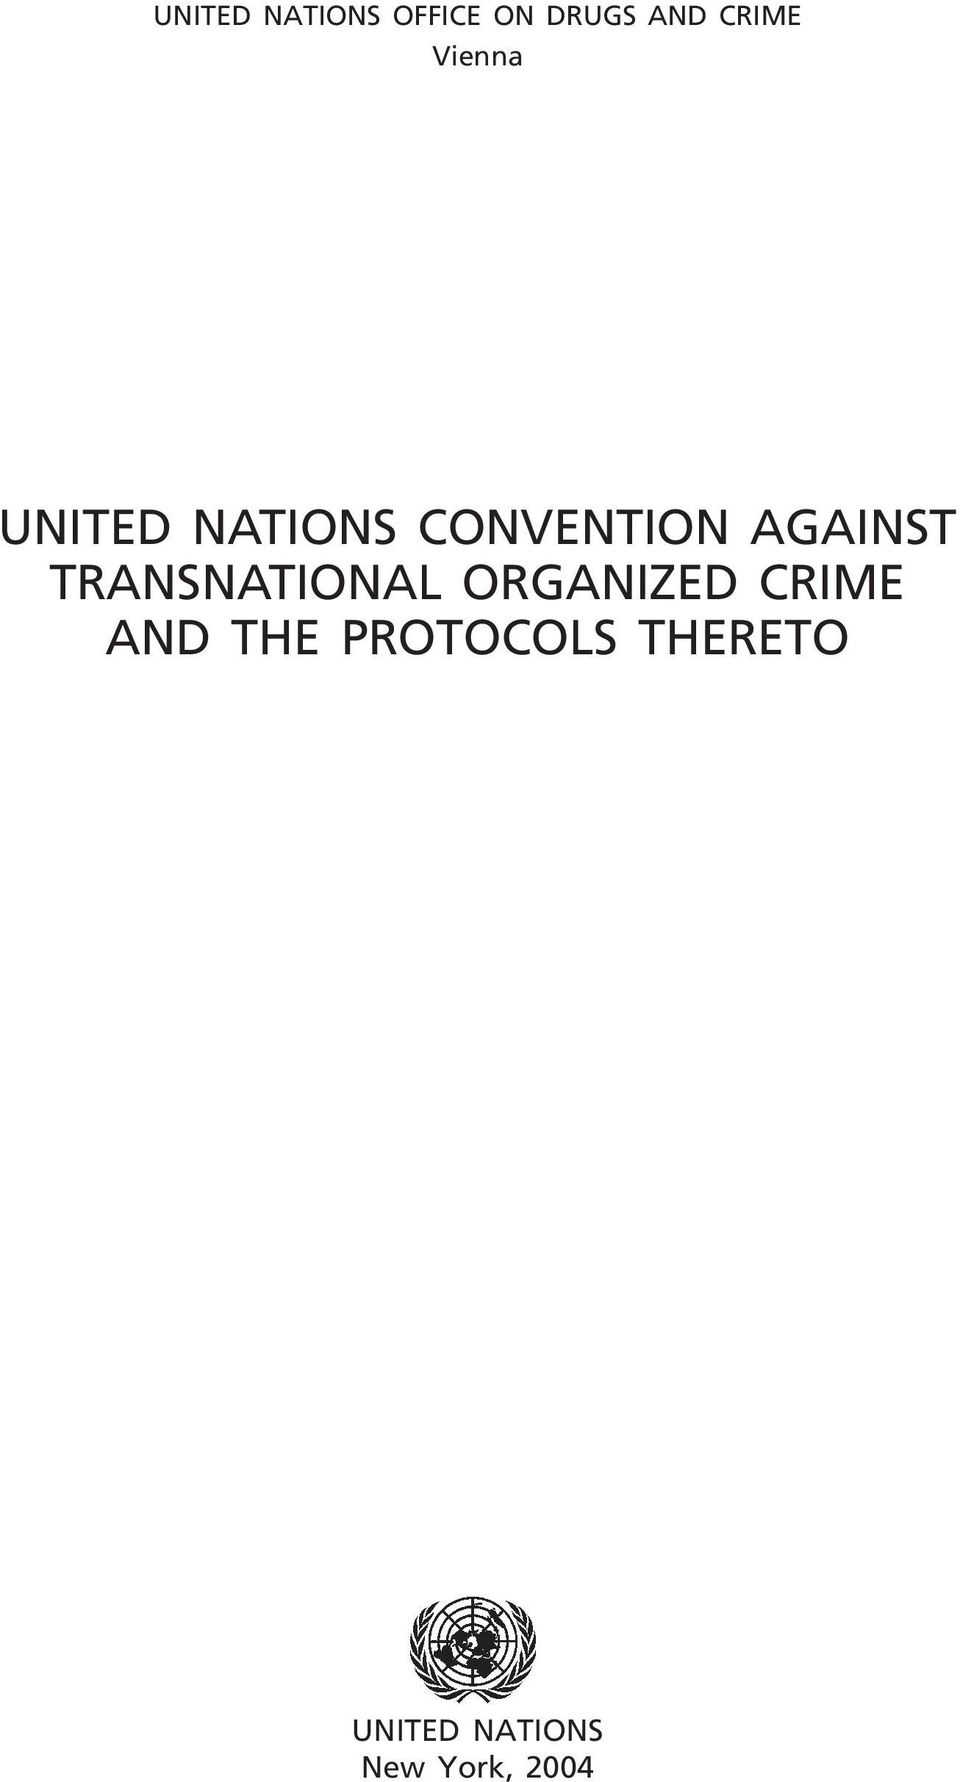 TRANSNATIONAL ORGANIZED CRIME AND THE